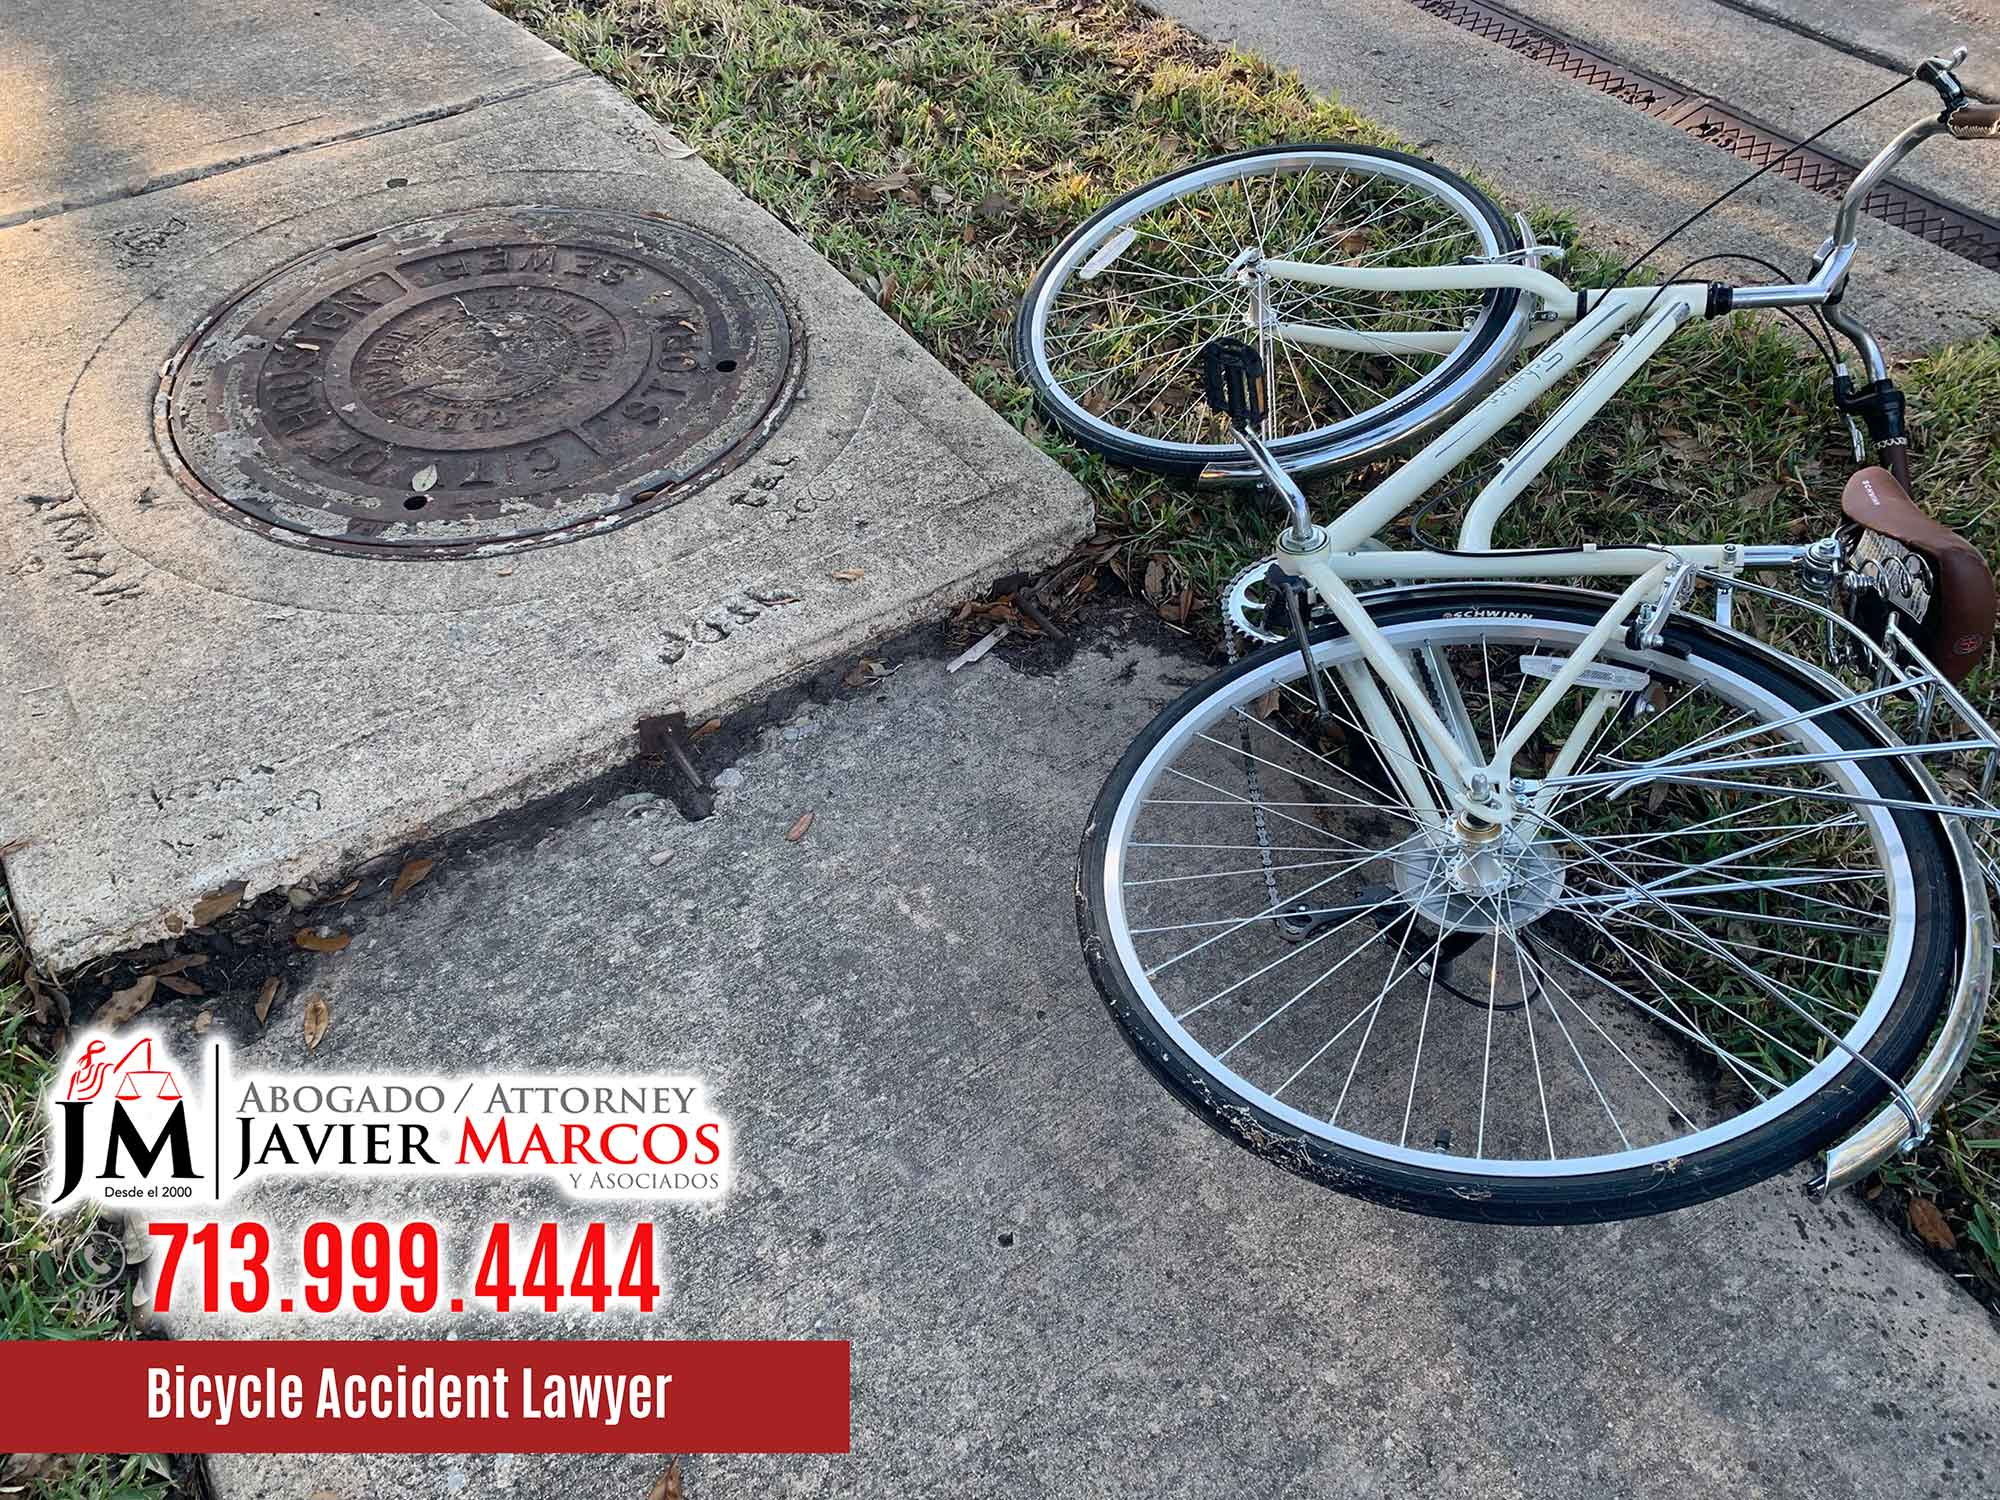 Bicycle Accident Lawyer   Attorney Javier Marcos   713.999.4444